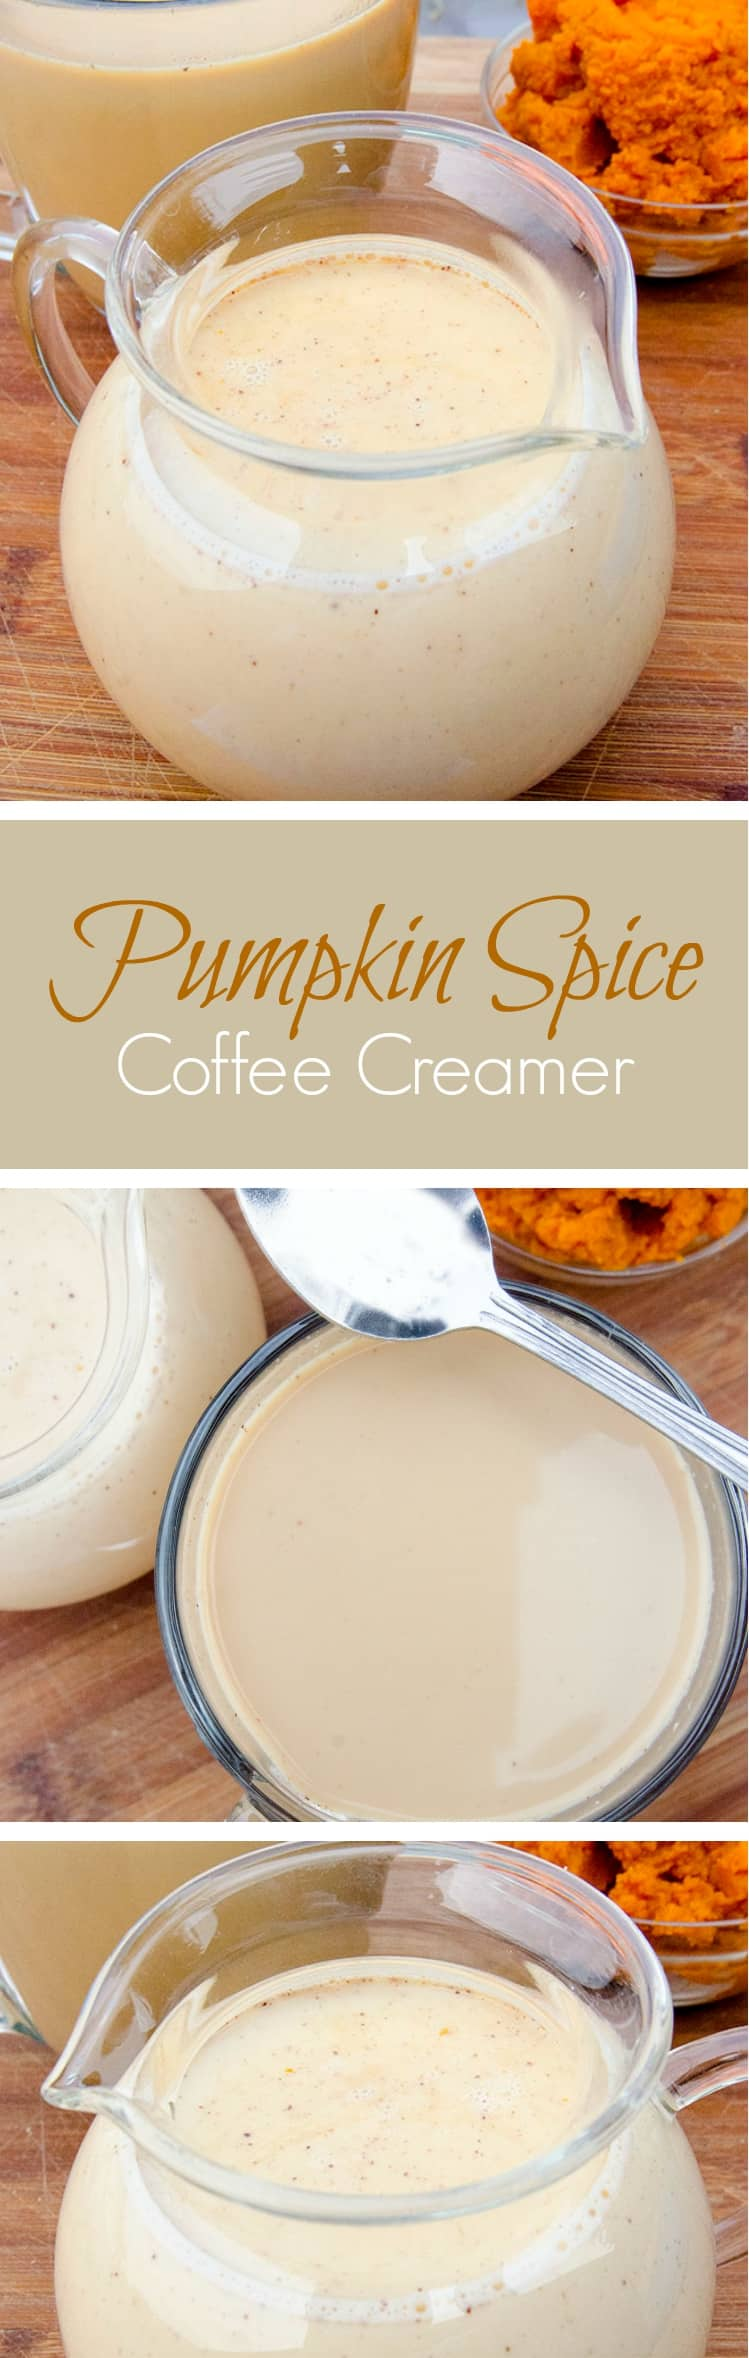 make your own Pumpkin spice coffee creamer recipe